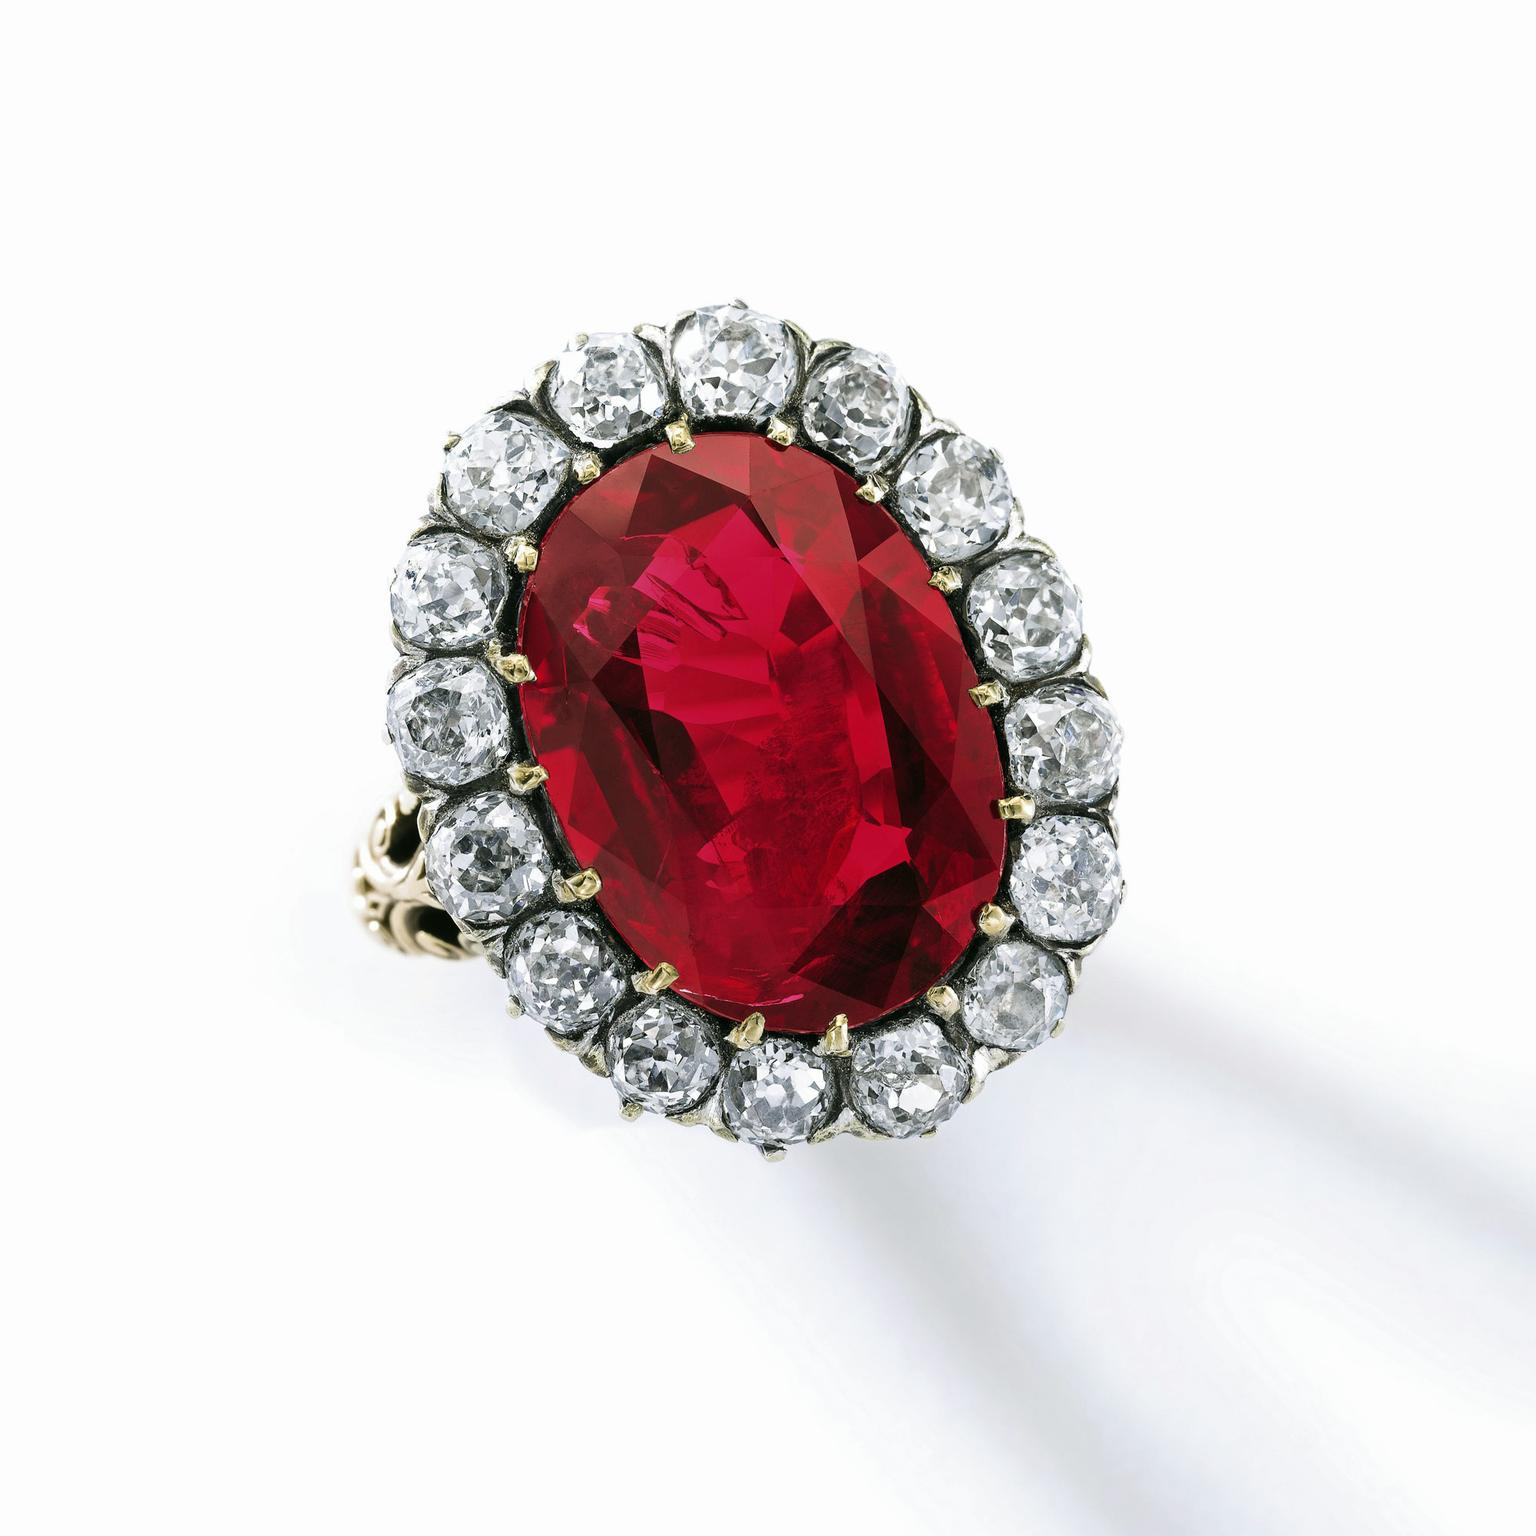 Sotheby's Geneva auction of the Queen Maria José Ruby Ring